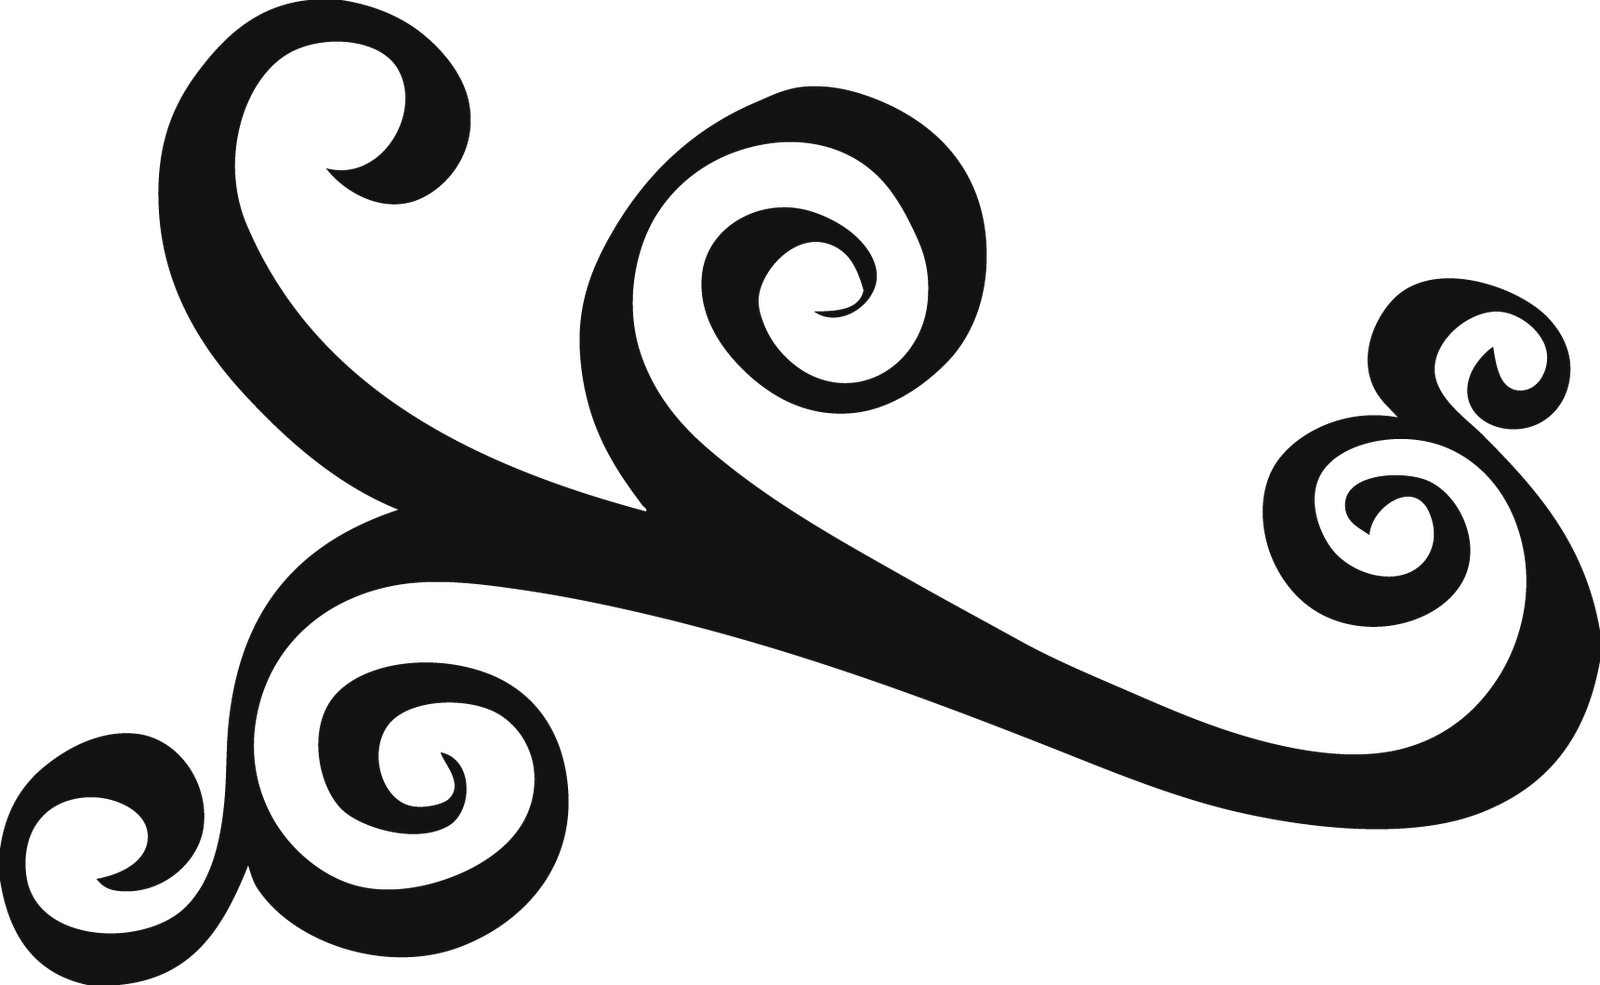 Simple swirl patterns png. Silhouette at getdrawings com